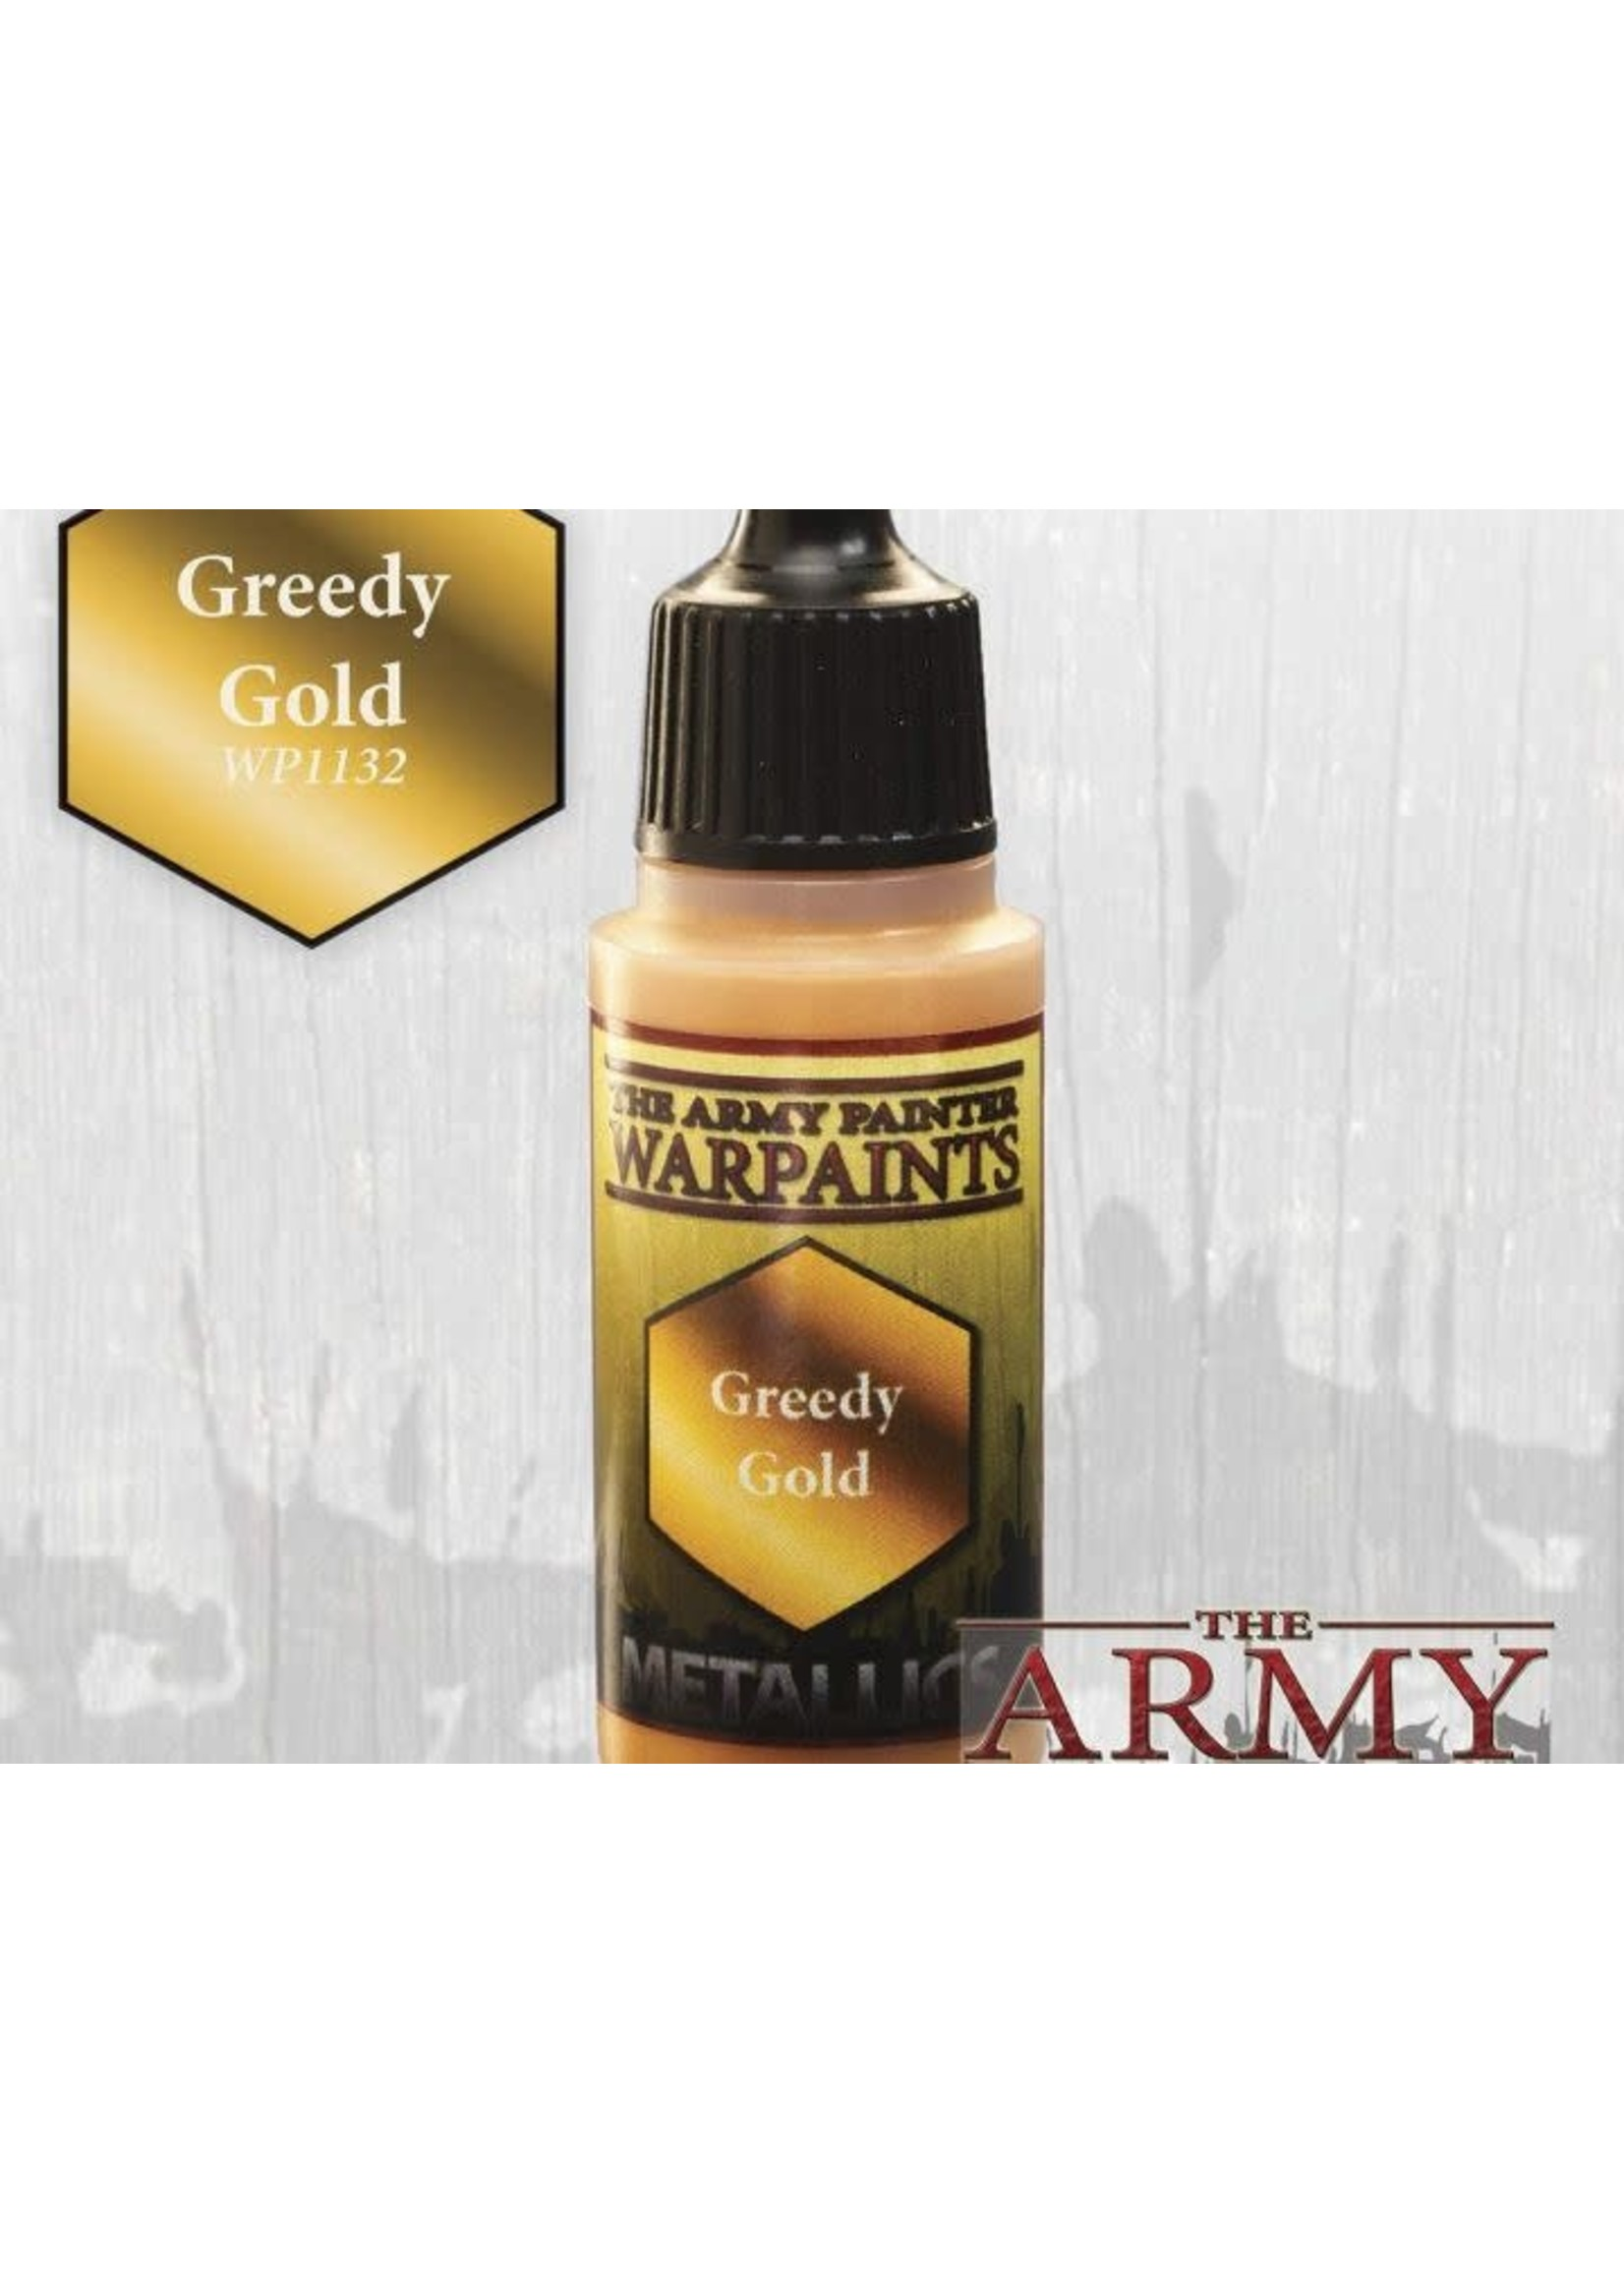 Army Painter Warpaints - Greedy Gold